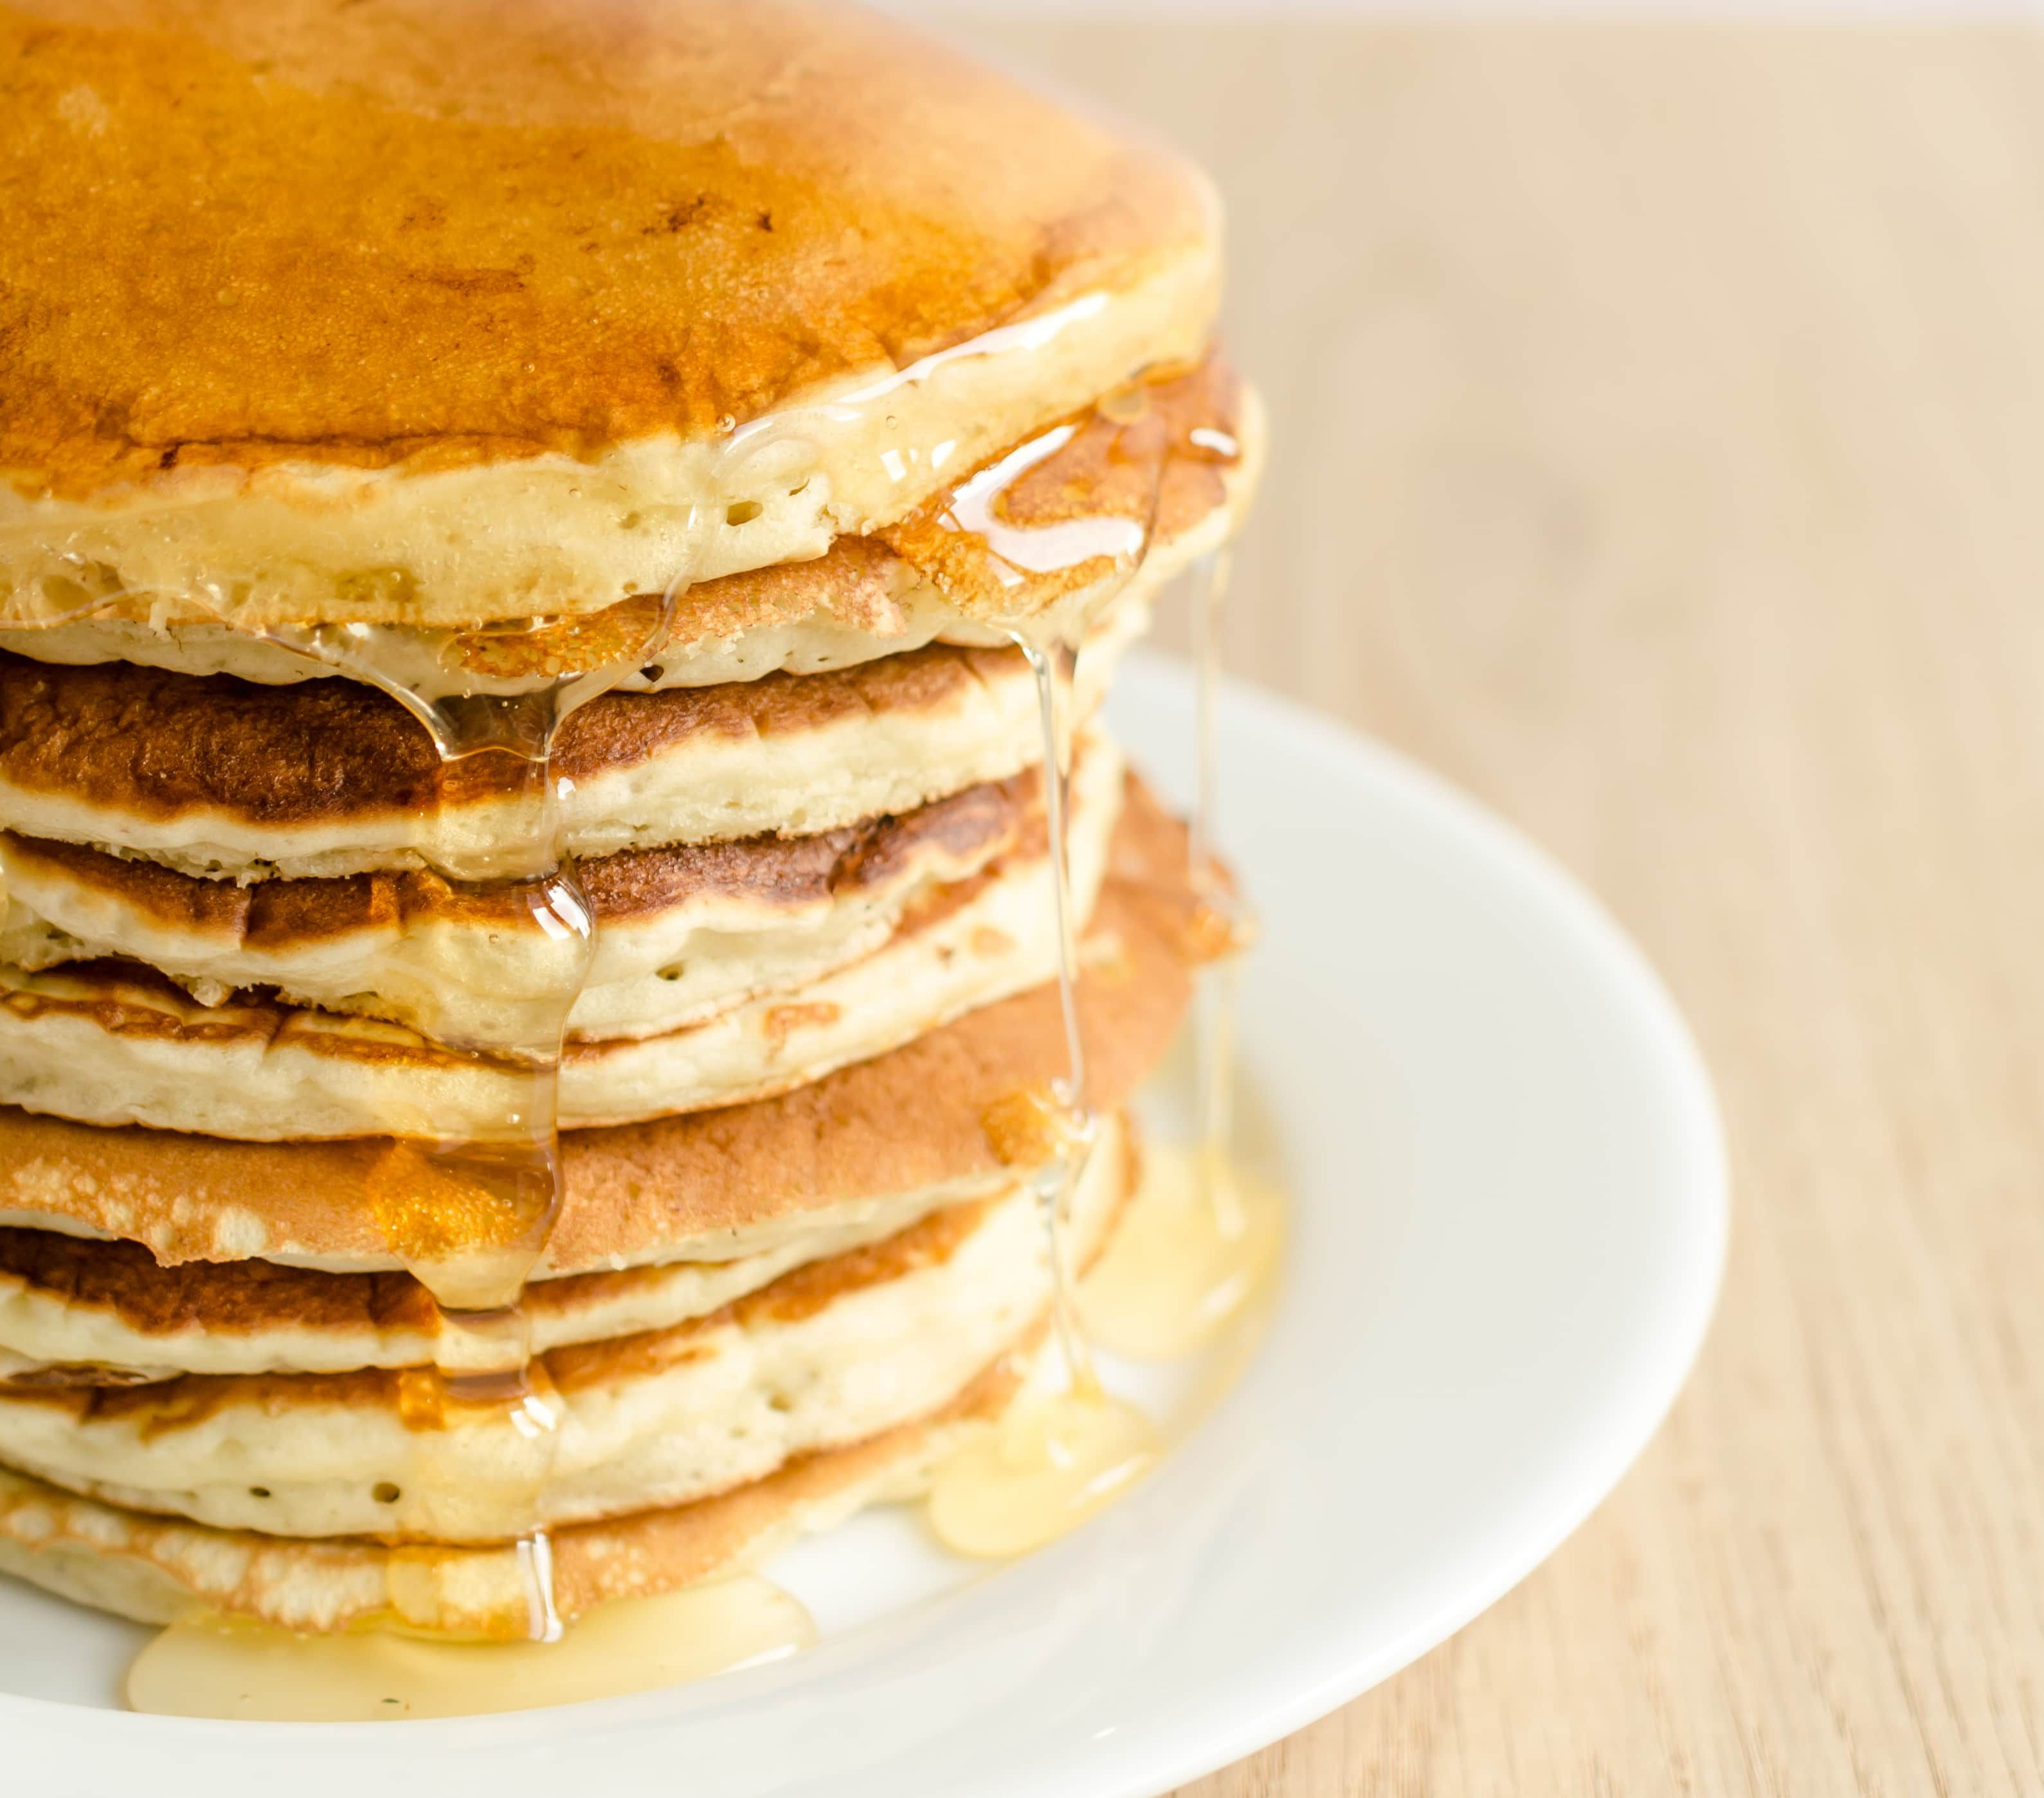 Meal Plans Recipes, Food, Gluten free pancakes recipes